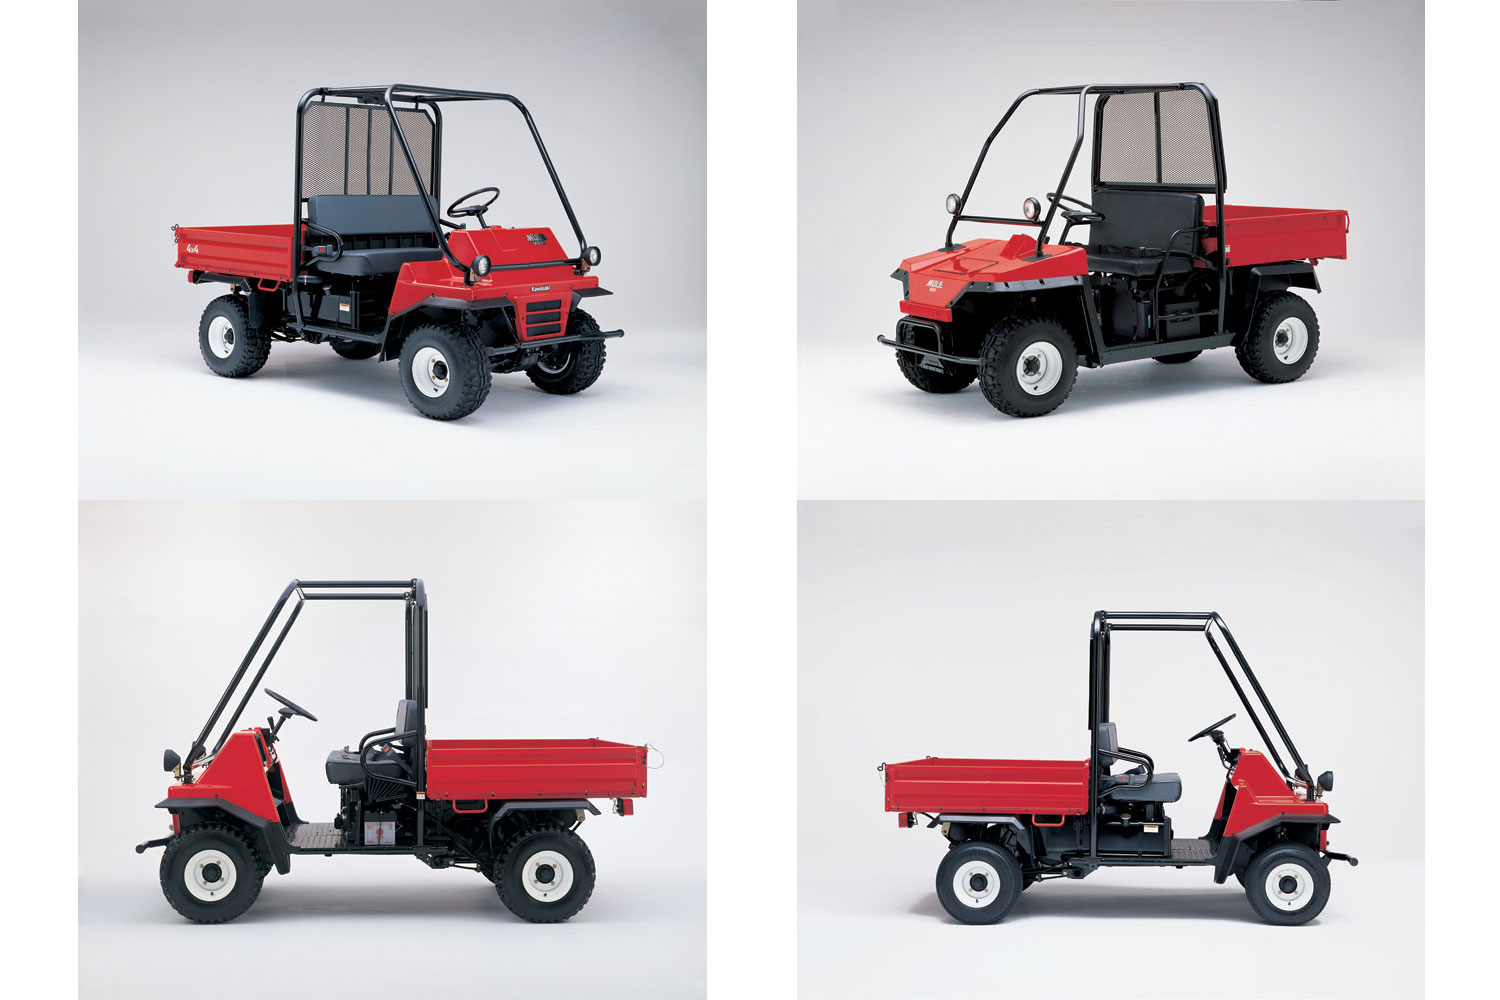 hight resolution of  built two seat utility vehicle kawasaki revolutionized the side x side utility vehicle segment with the introduction of the mule 1000 30 years ago